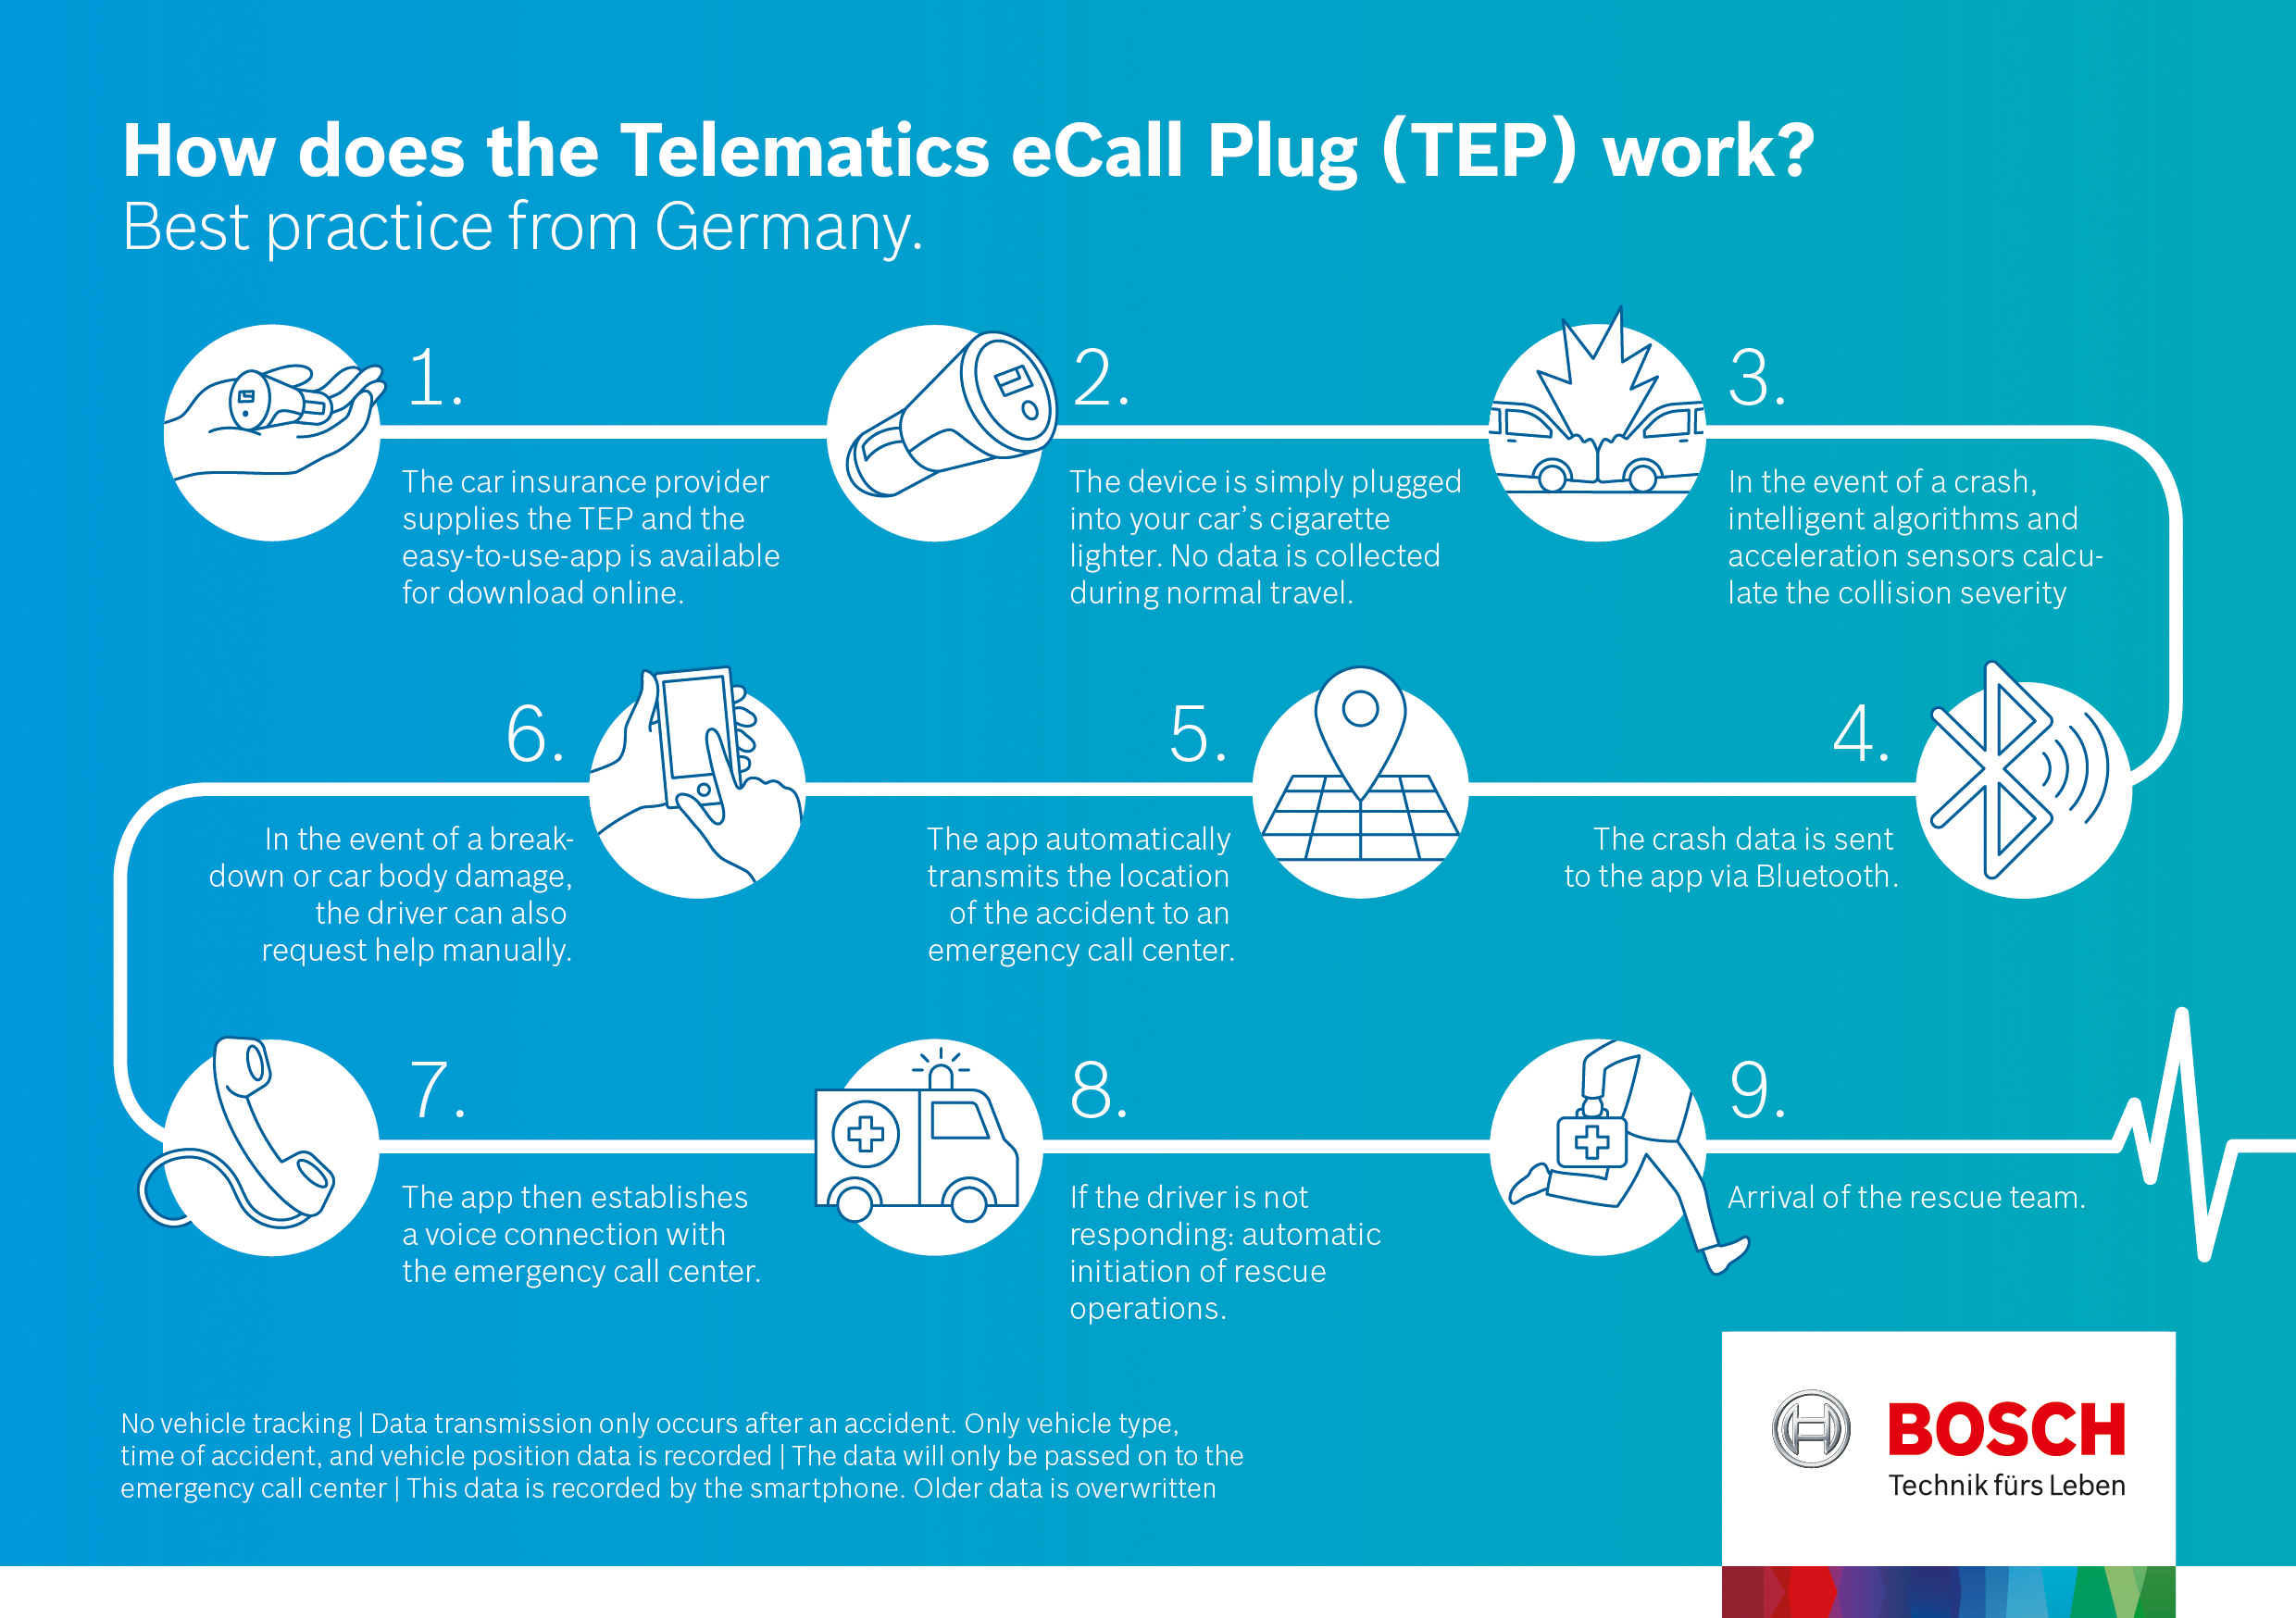 This is how the Telematics eCall Plug saves lives.